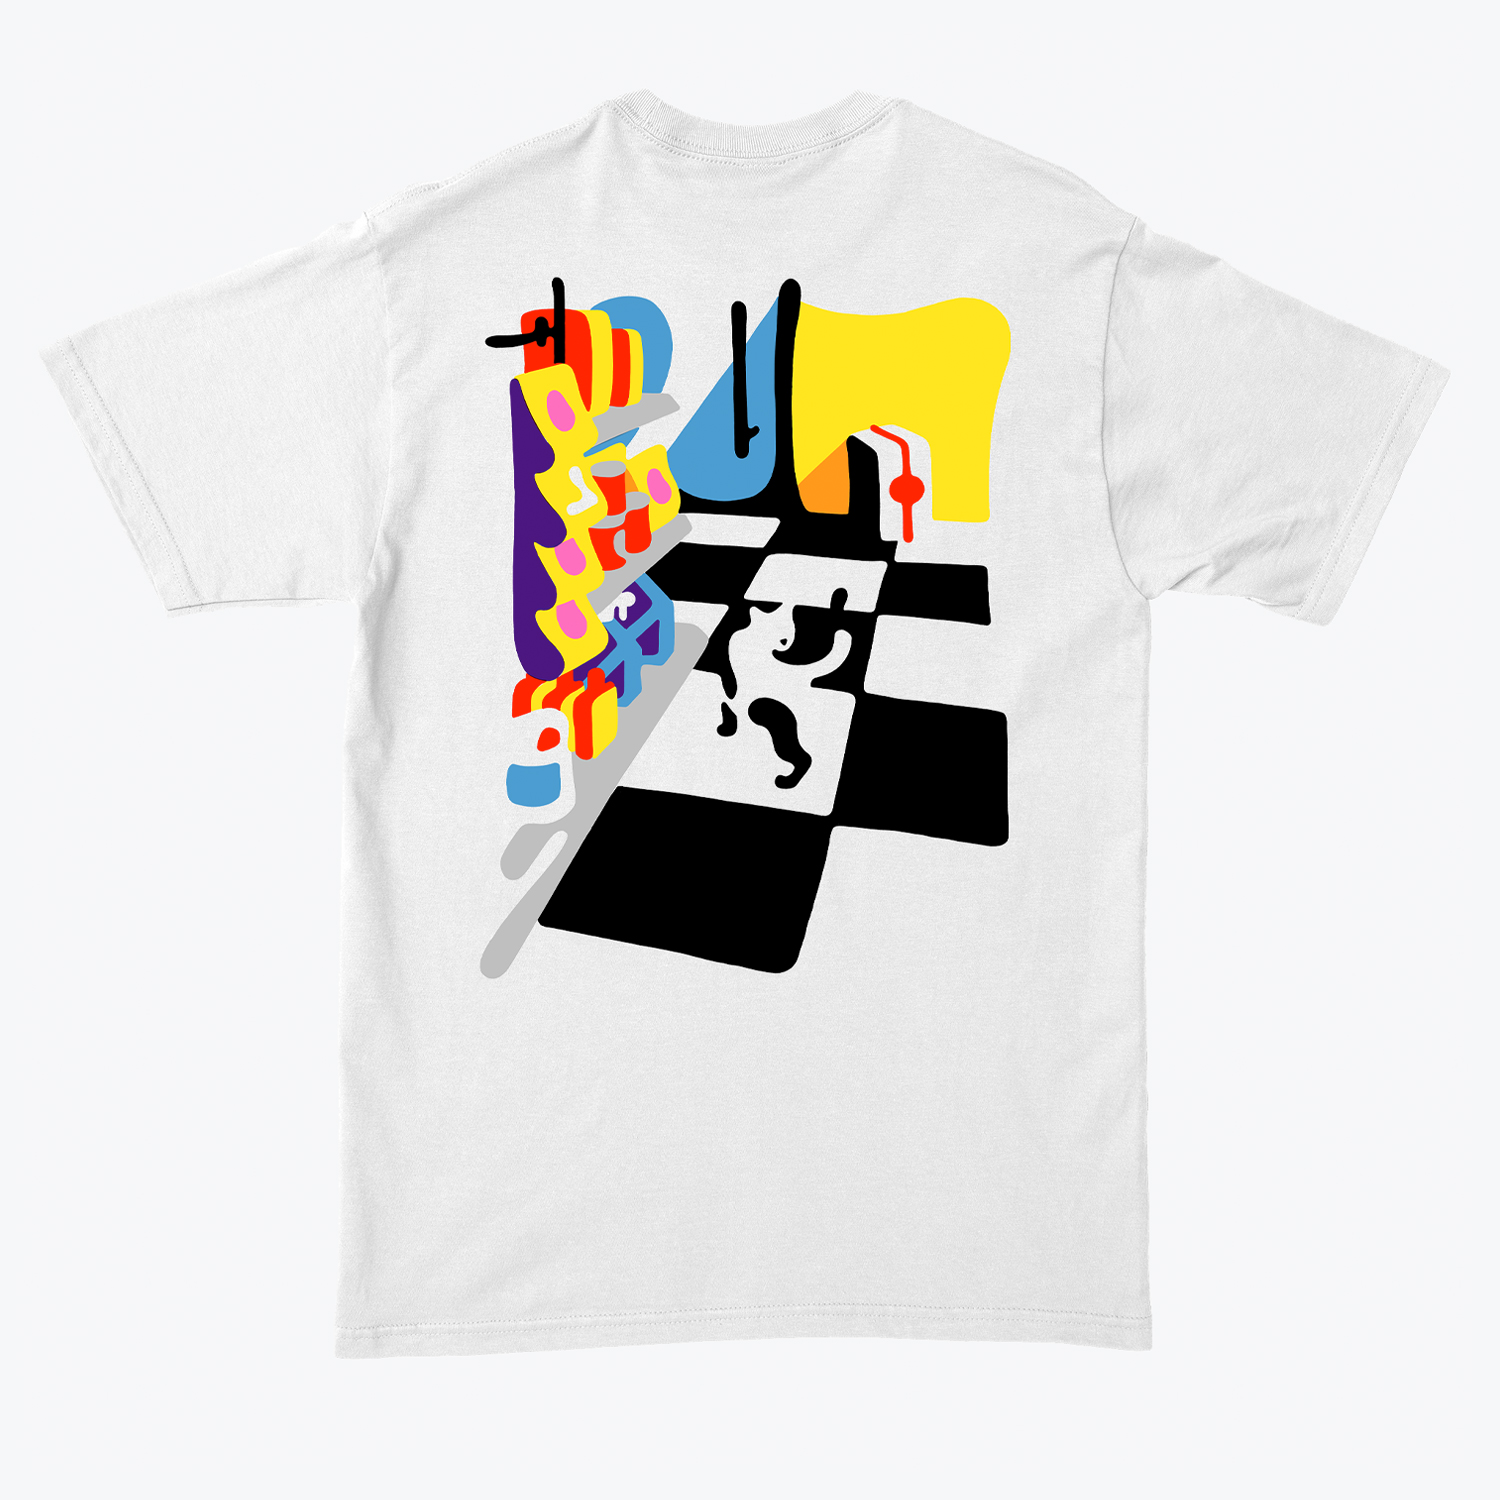 Jimmy Simpson's 'Bodega Cat' T-shirt